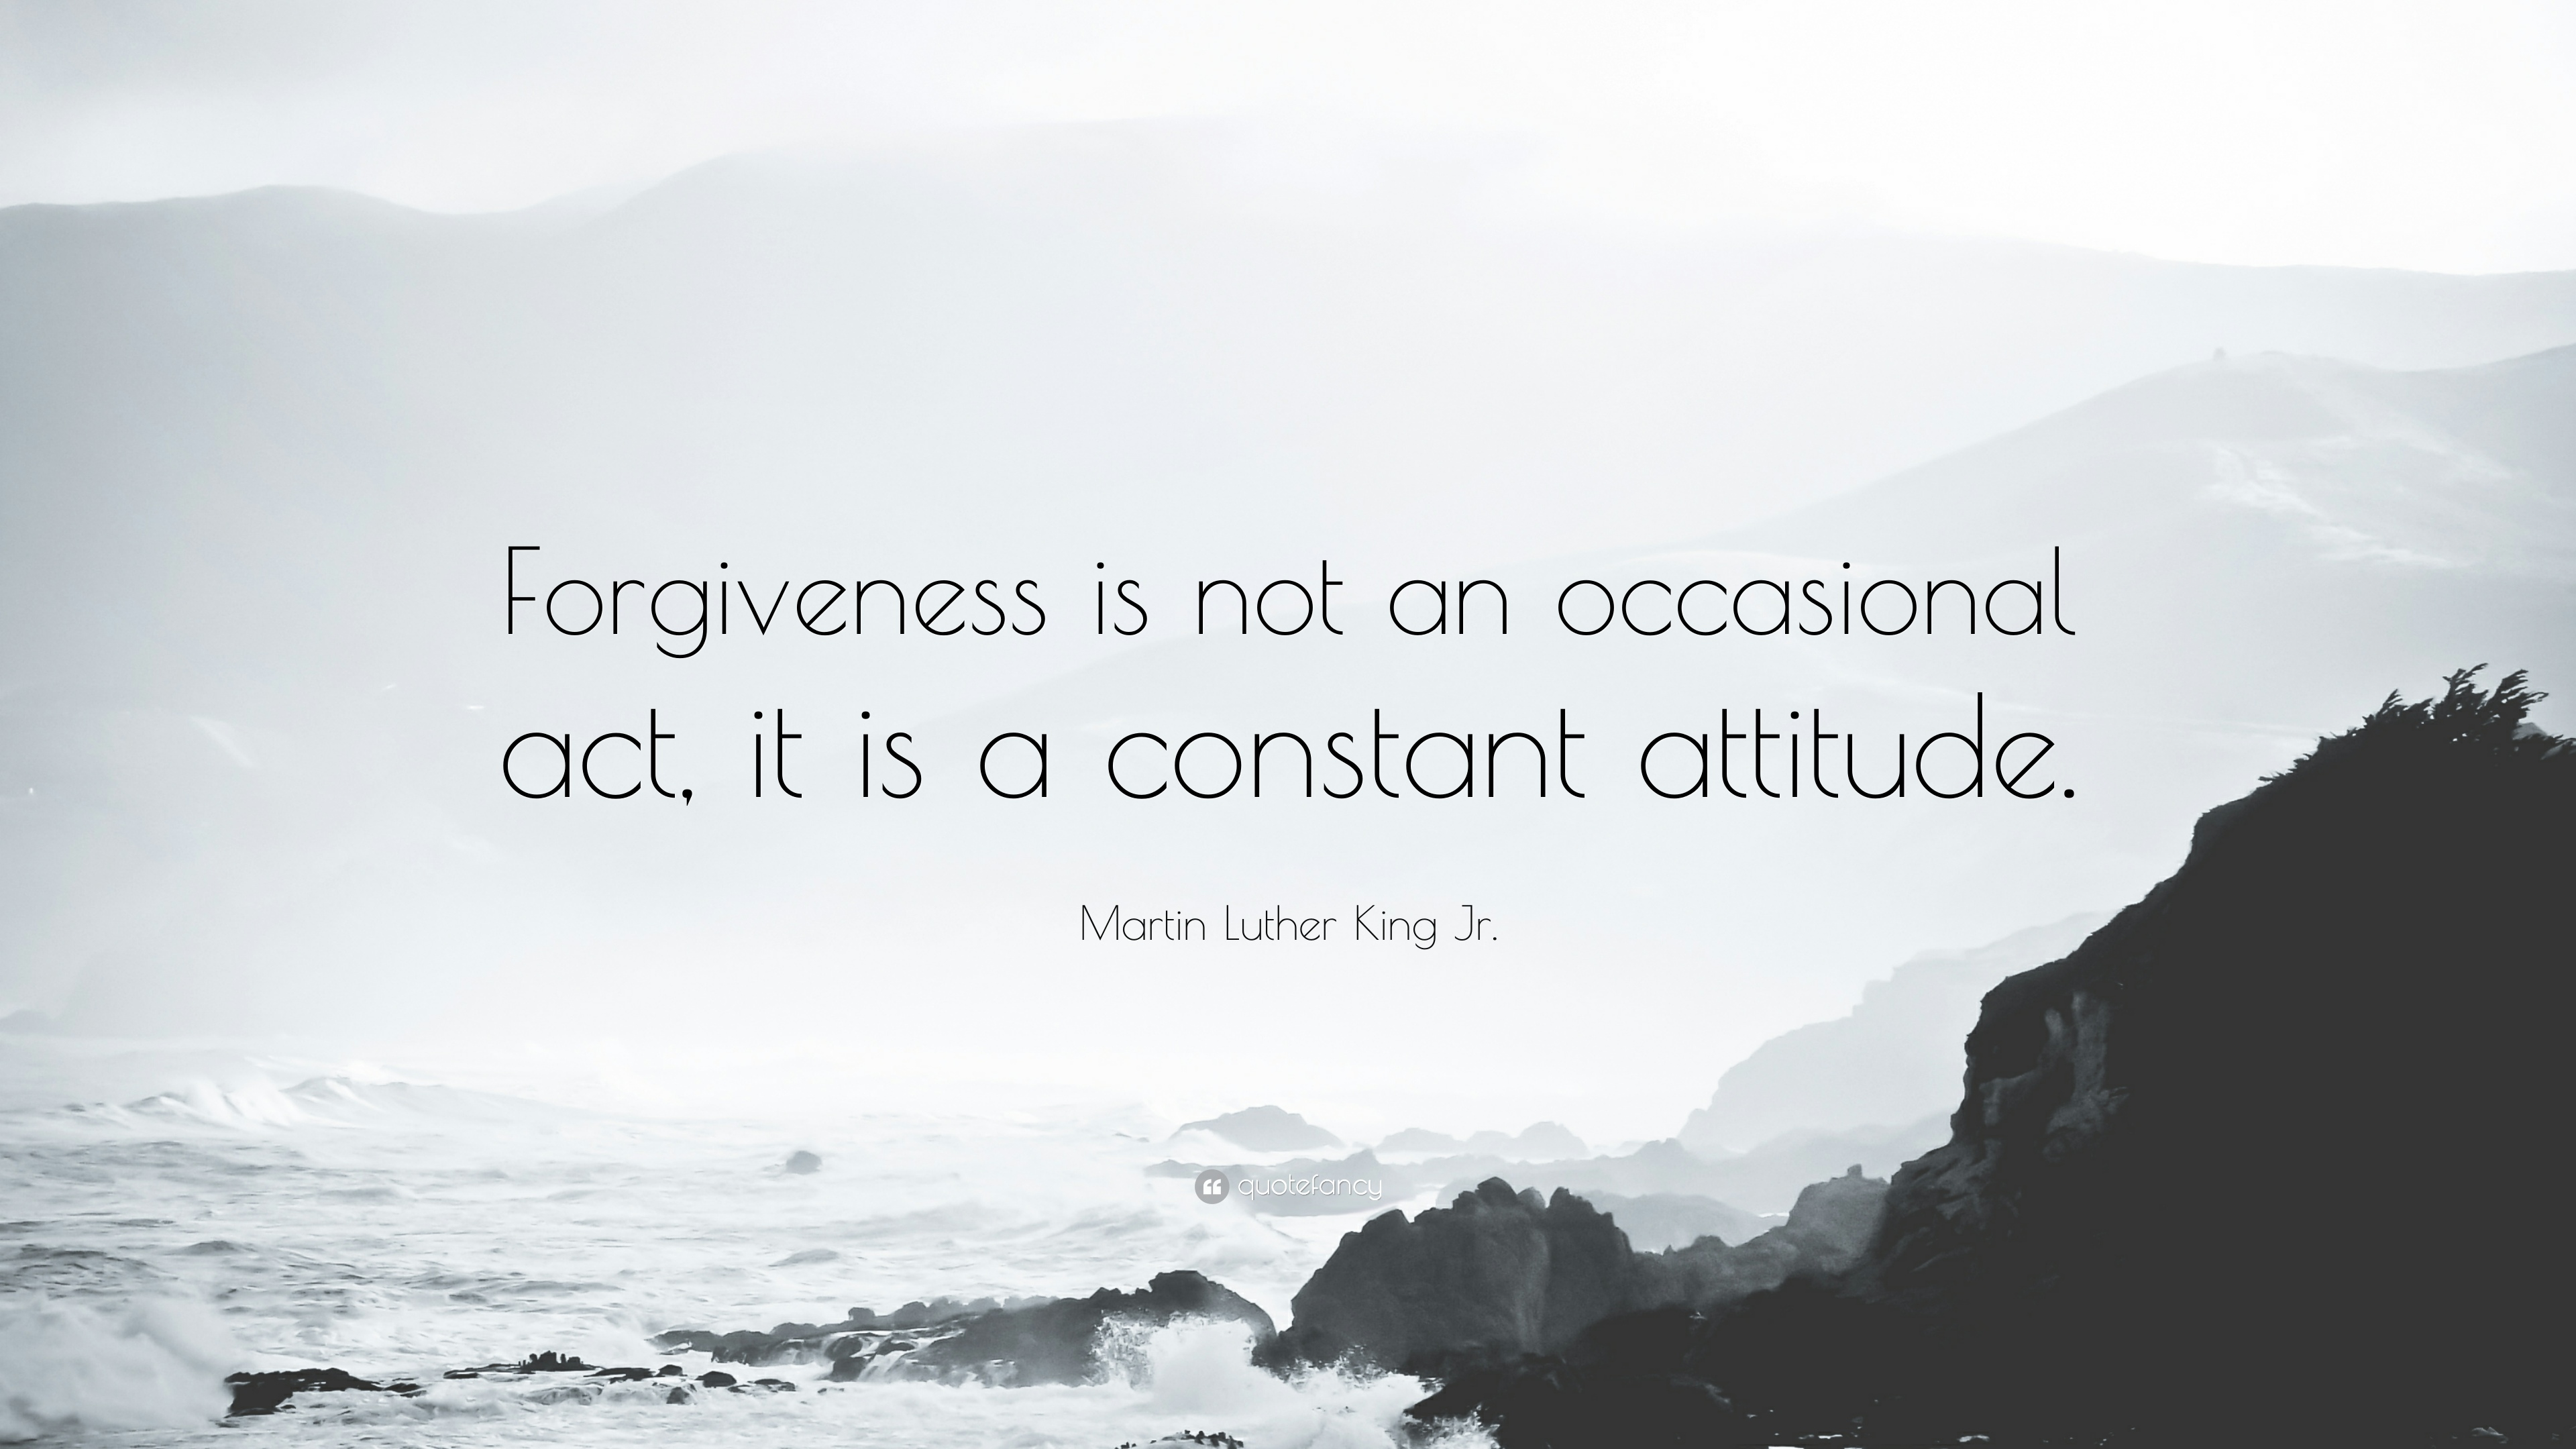 Quotes On Forgiveness Forgiveness Quotes 40 Wallpapers  Quotefancy